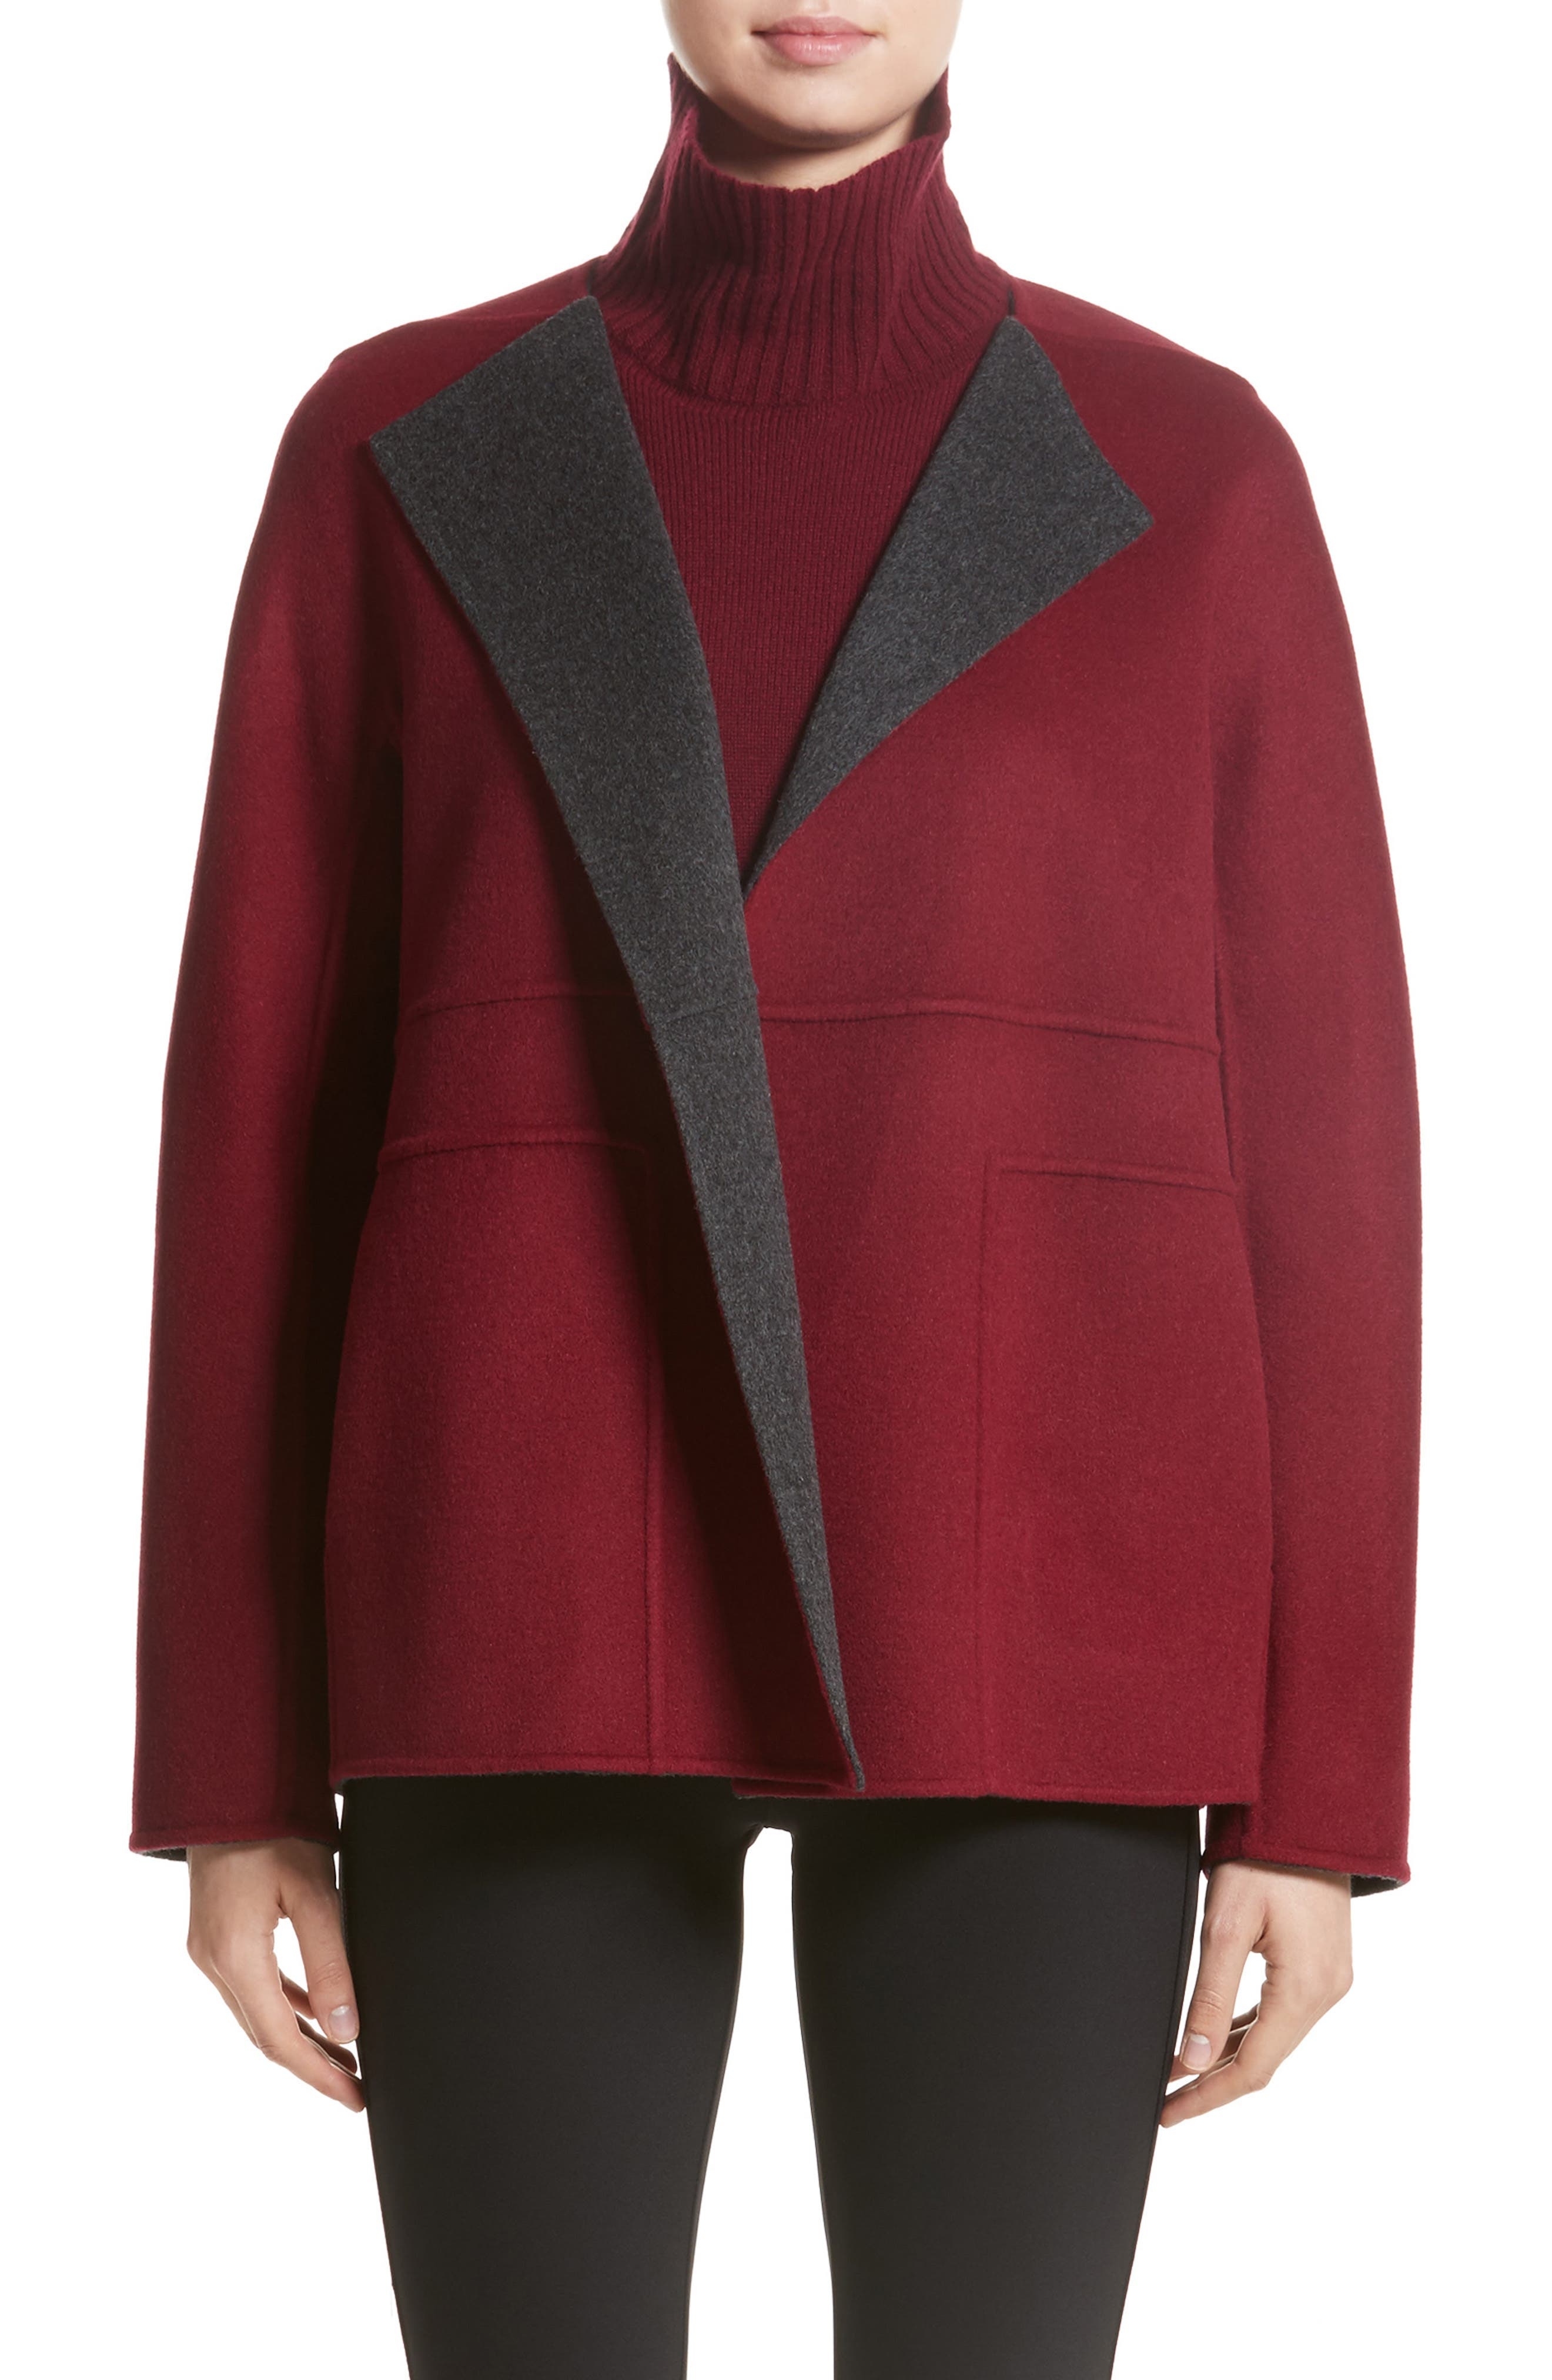 Alternate Image 1 Selected - Lafayette 148 New York Two-Tone Double Face Reversible Jacket (Nordstrom Exclusive)